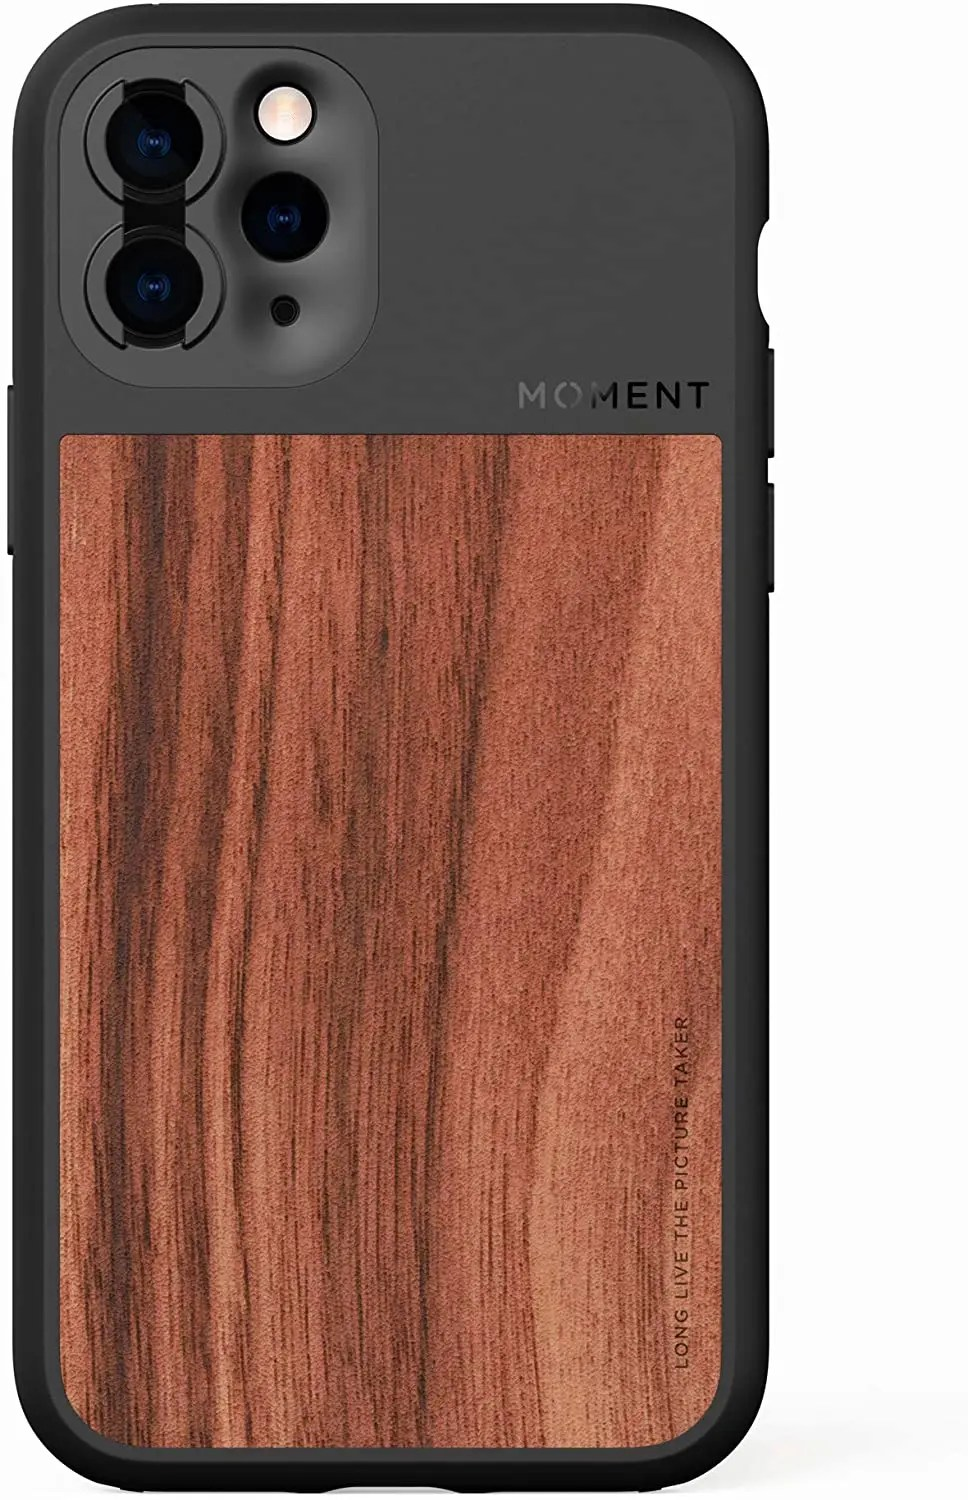 Moment Protective iPhone 11 Pro Max Case